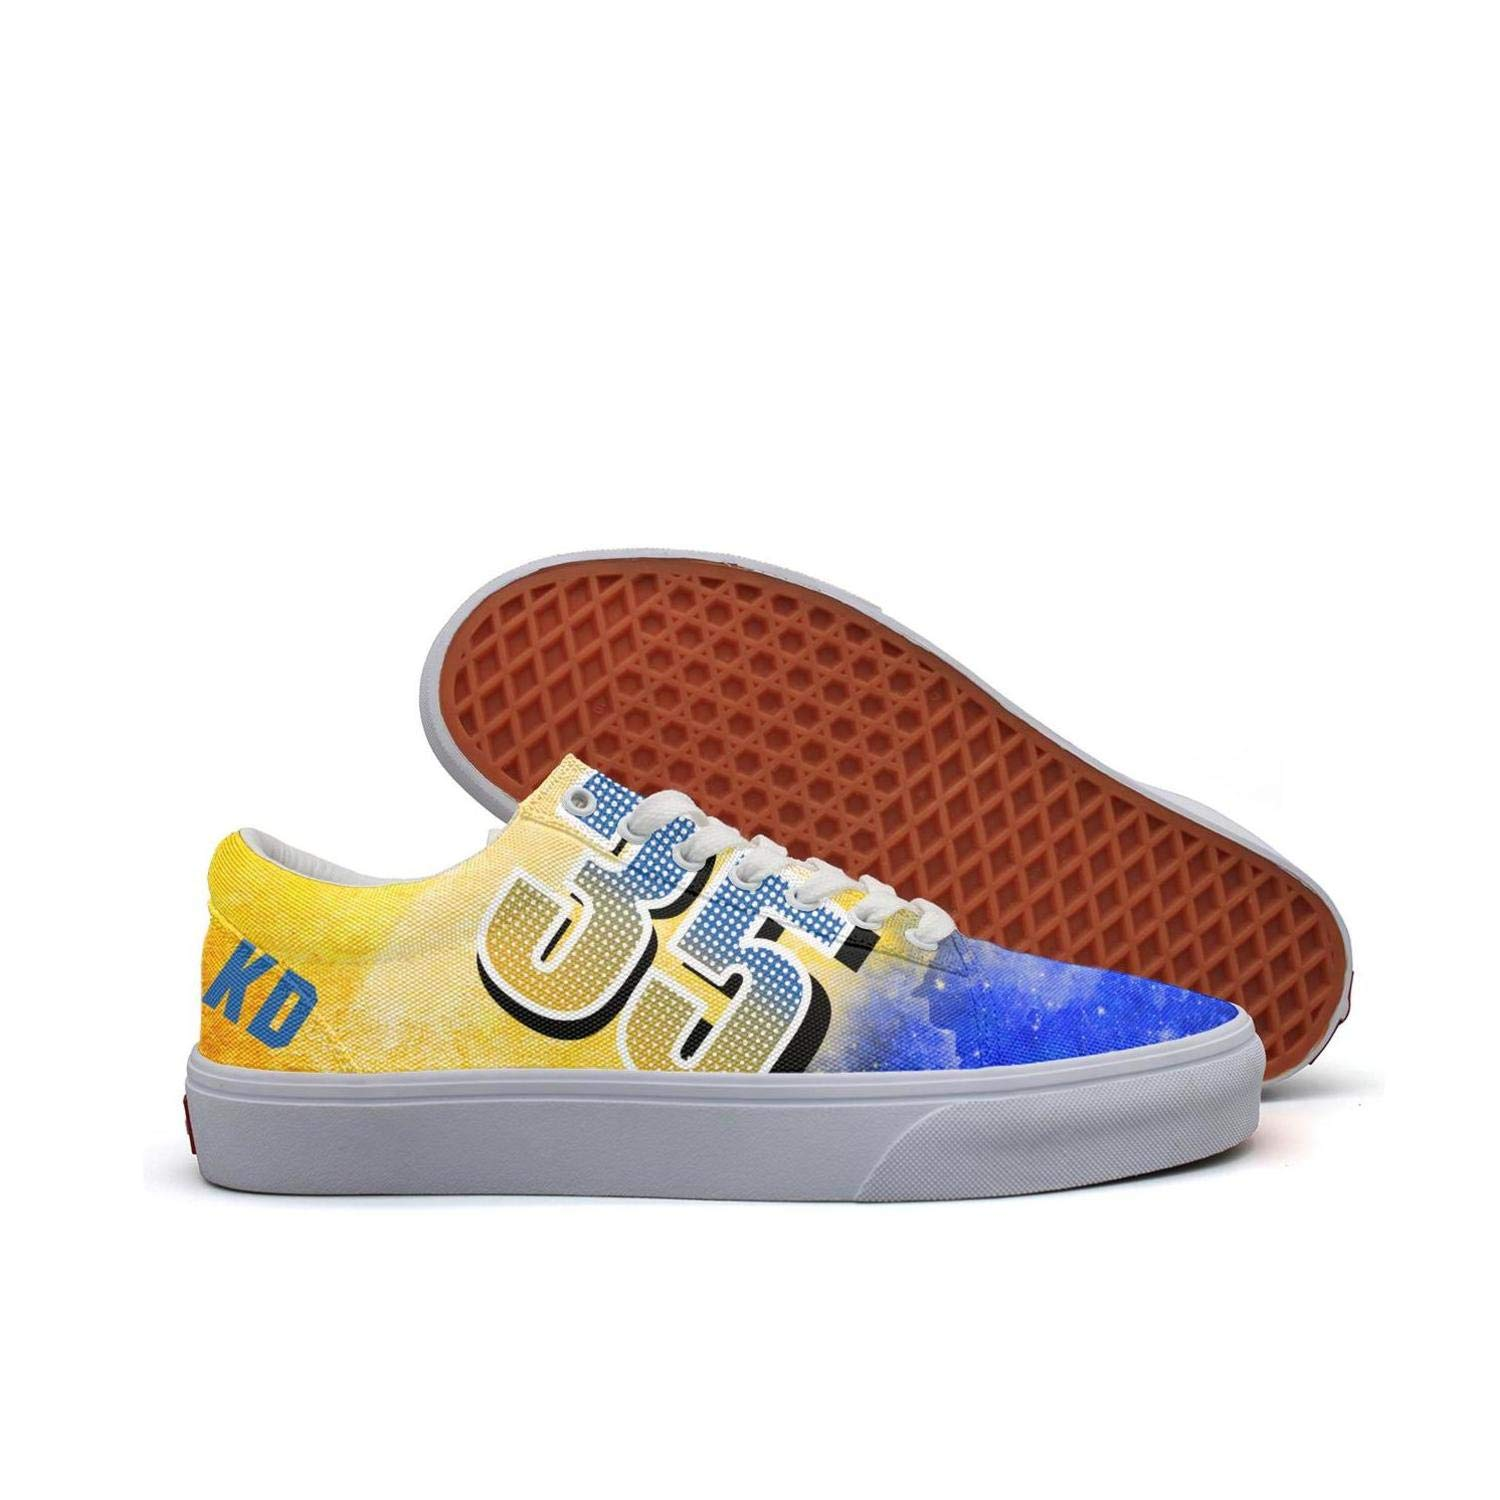 2cce66d050d90 Amazon.com: uter ewjrt Mens Blue and Yellow 35 KD Pattern Fashion ...